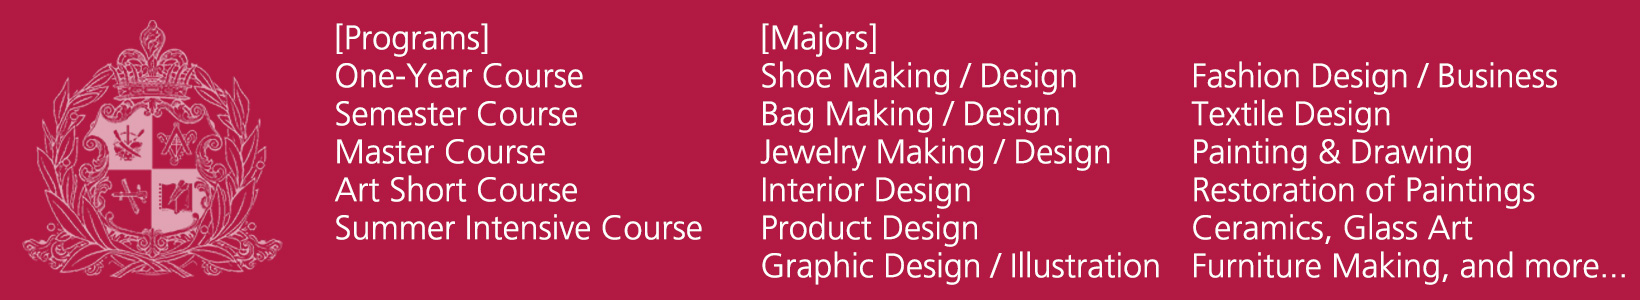 shoe making/design, bag making/design, jewelry making/design, interior design, product design, graphic design/illustration, fashion design, textile design, painting and drawing, restoration of paintings, ceramics, grass art, furniture making, and more